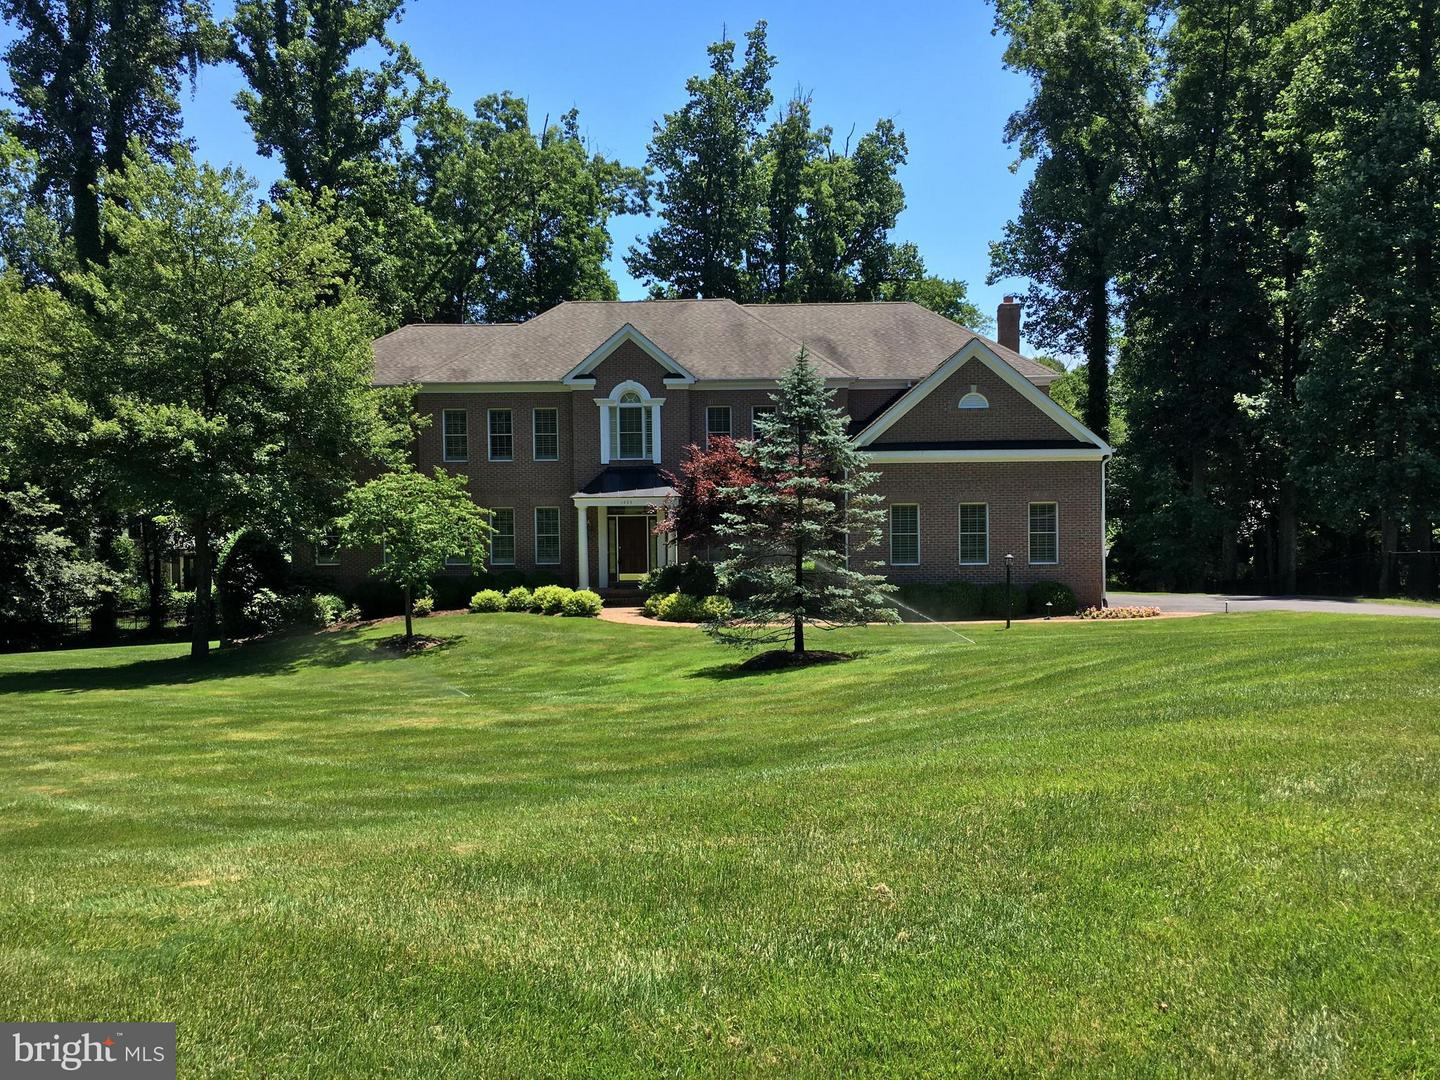 1495 Lily Loch Way Great Falls, VA 22066